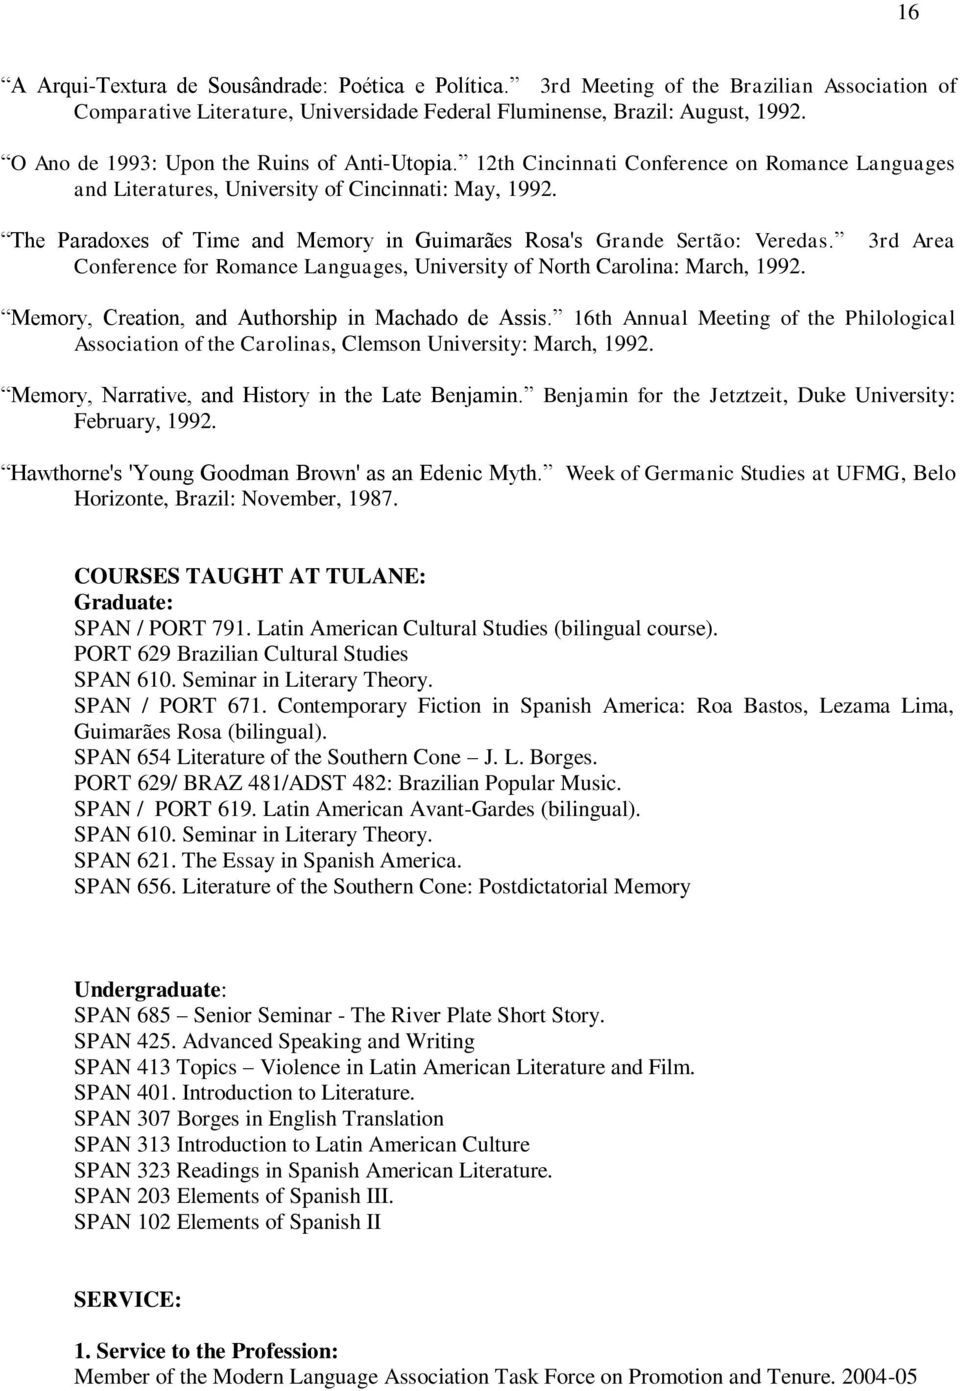 The Paradoxes of Time and Memory in Guimarães Rosa's Grande Sertão: Veredas. Conference for Romance Languages, University of North Carolina: March, 1992.